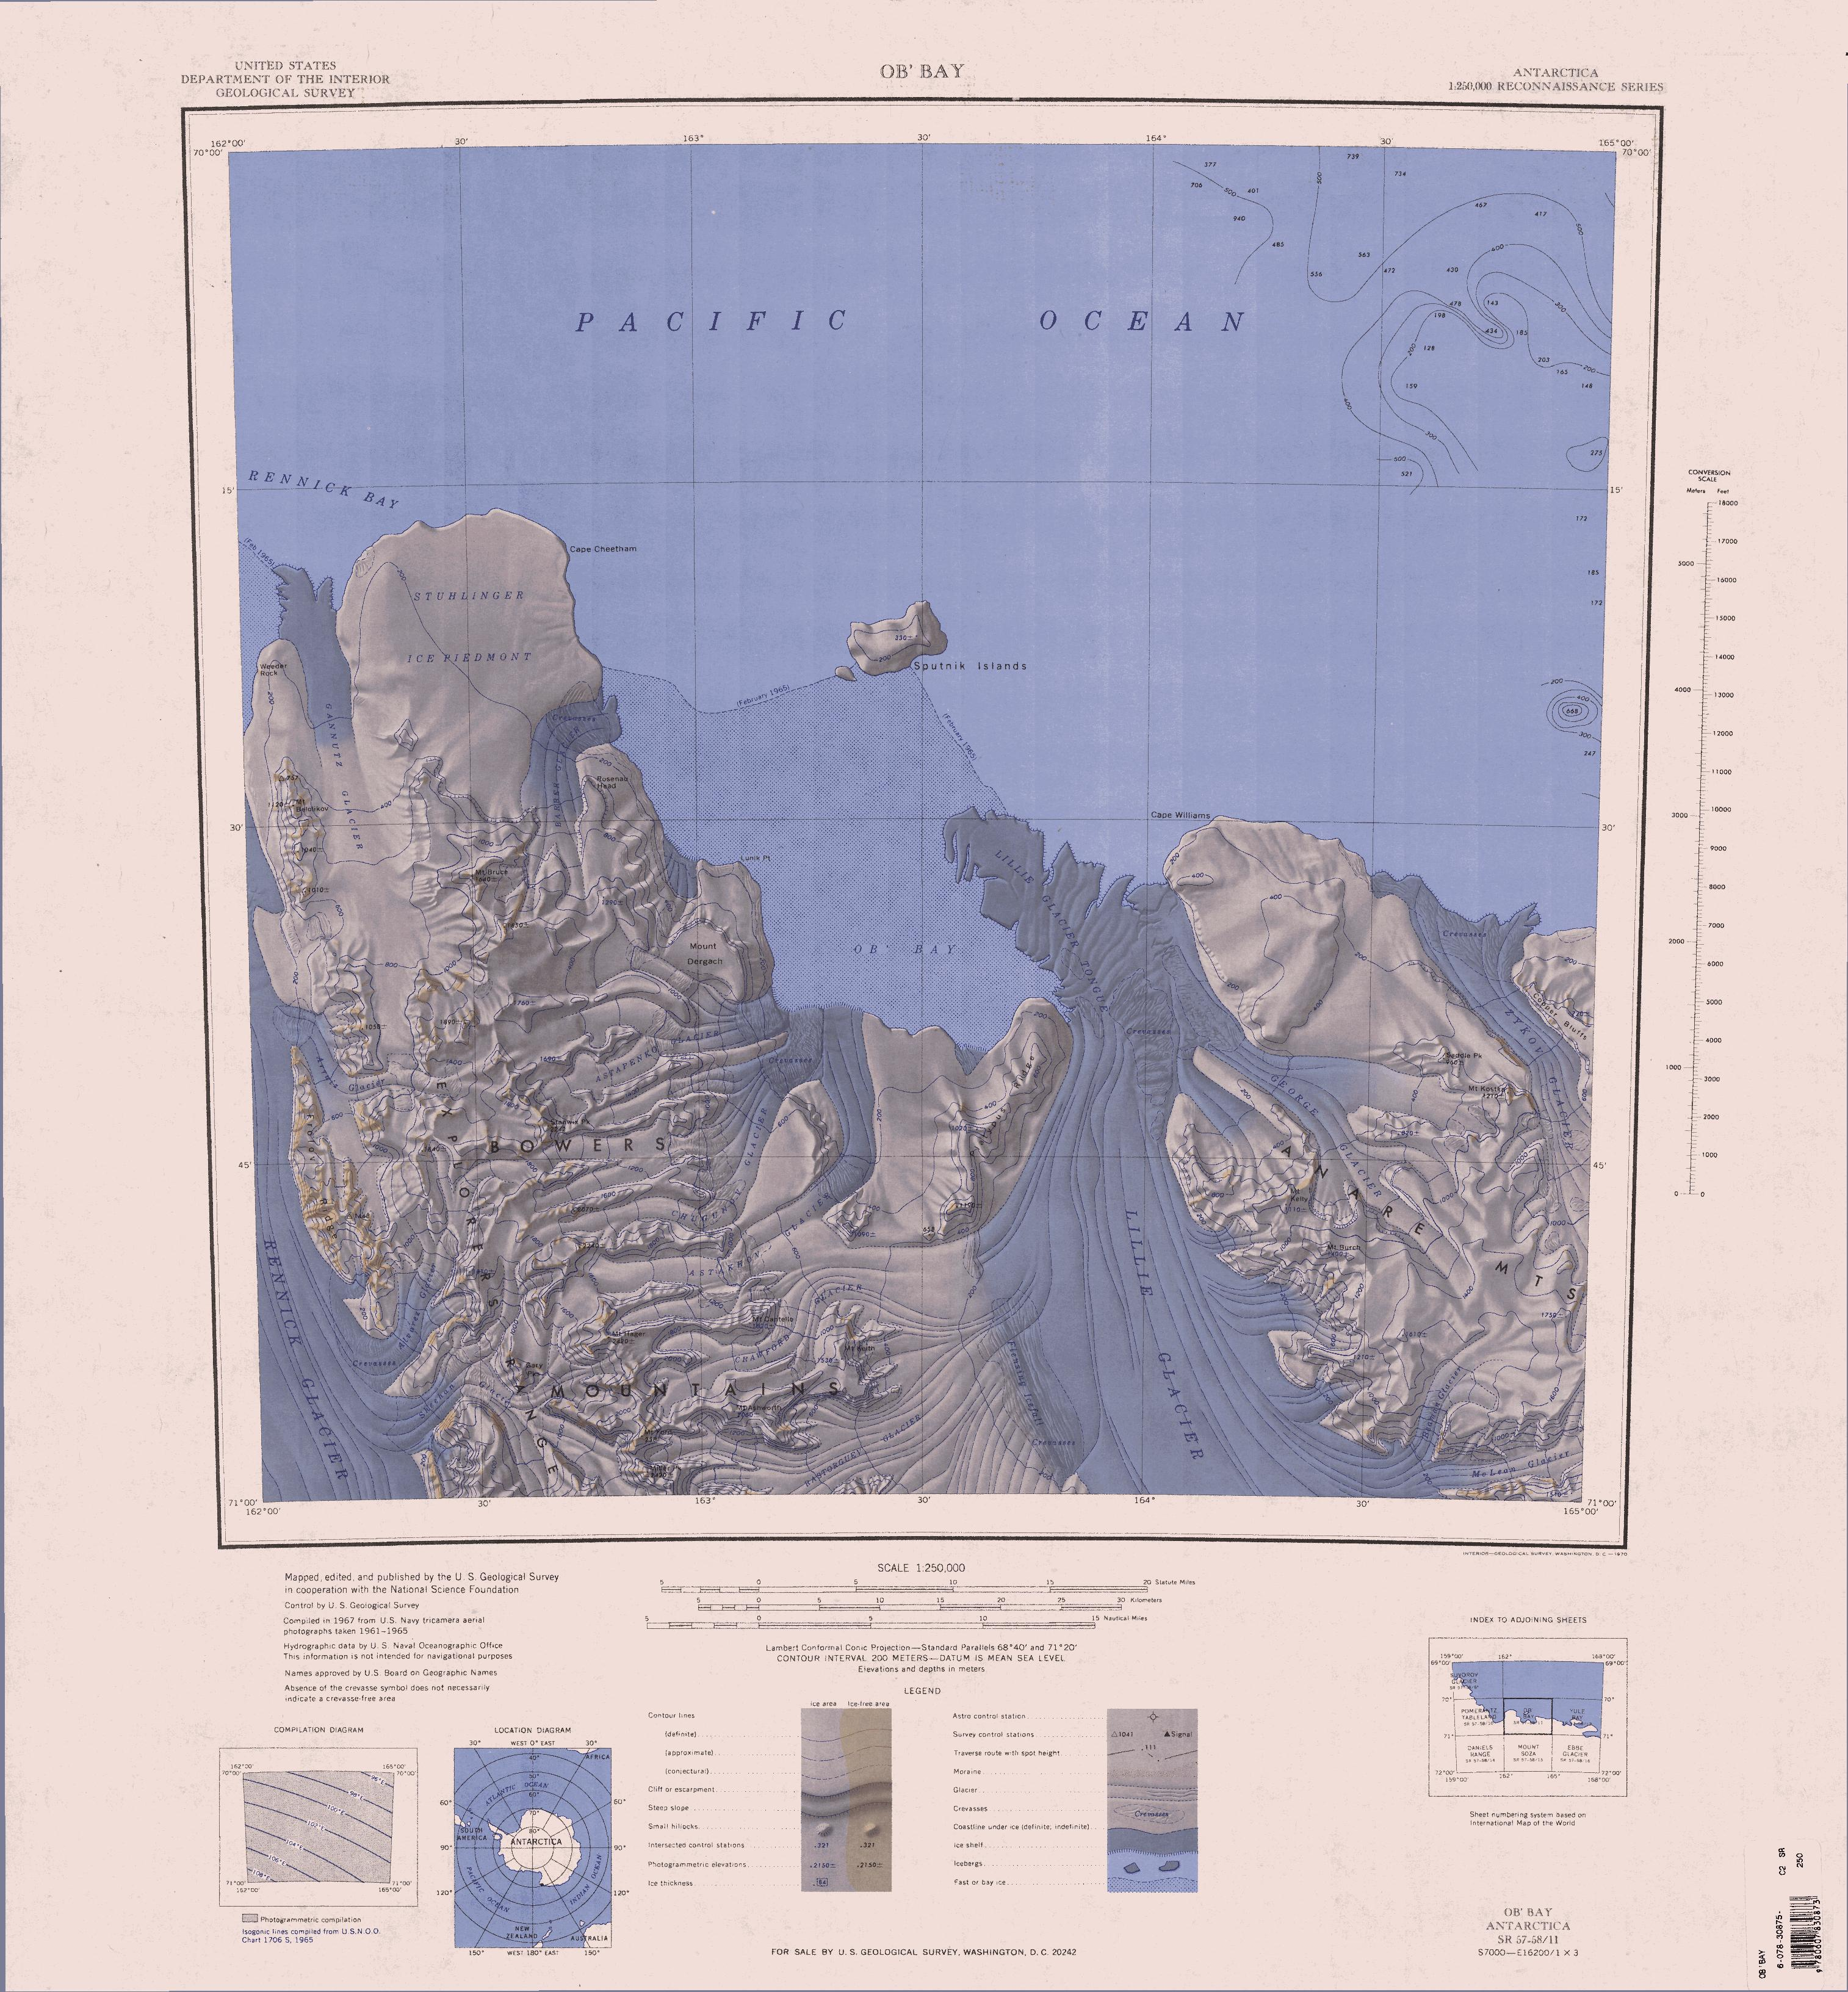 Sea Level Chart United States: C70195s1 Ant.Map Ob7 Bay.jpg - Wikipedia,Chart